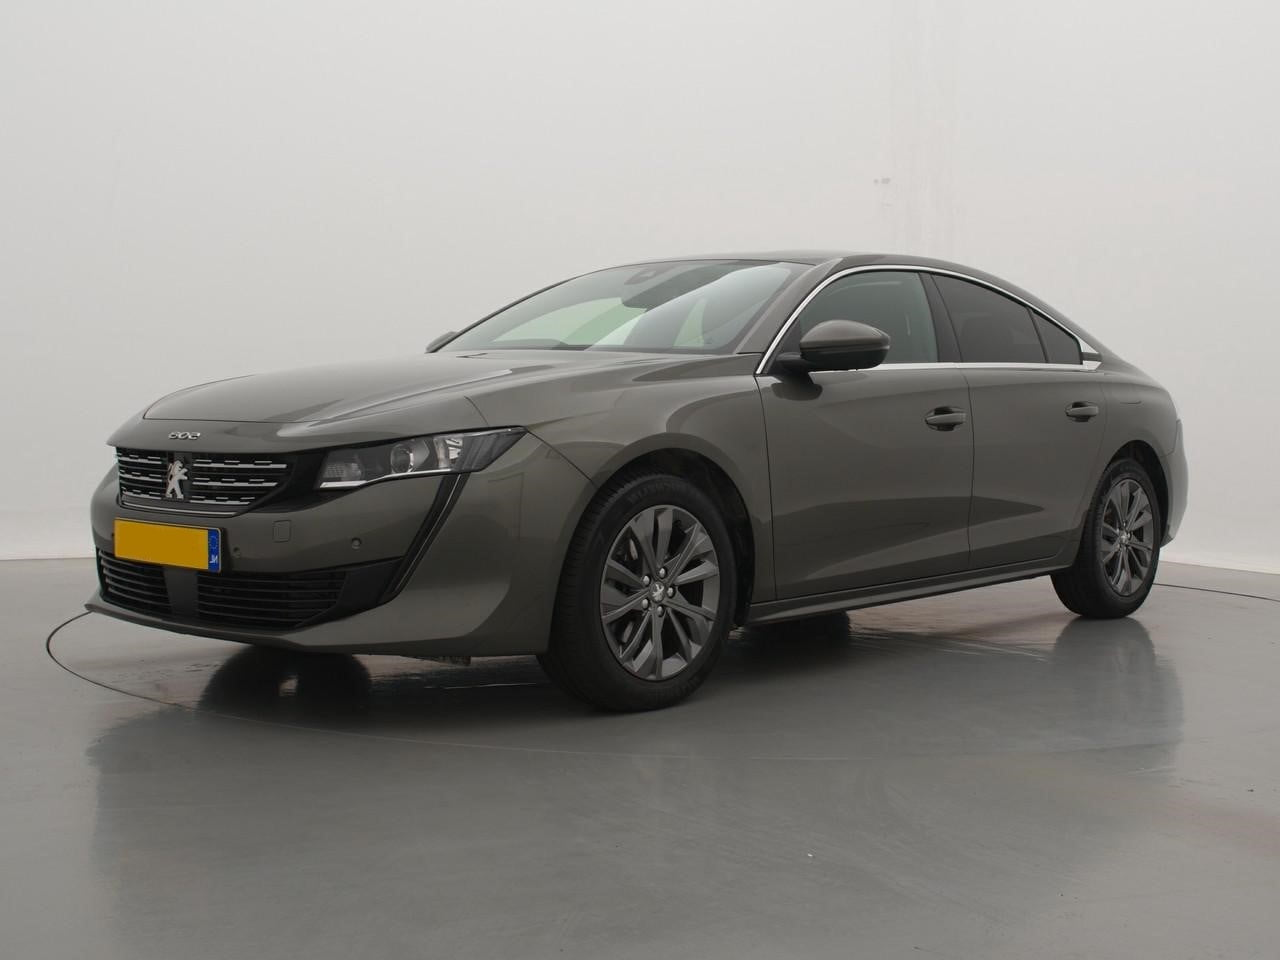 Peugeot 508 Berline 1.6 PureTech 180pk Blue Lease Active EAT8 5d.